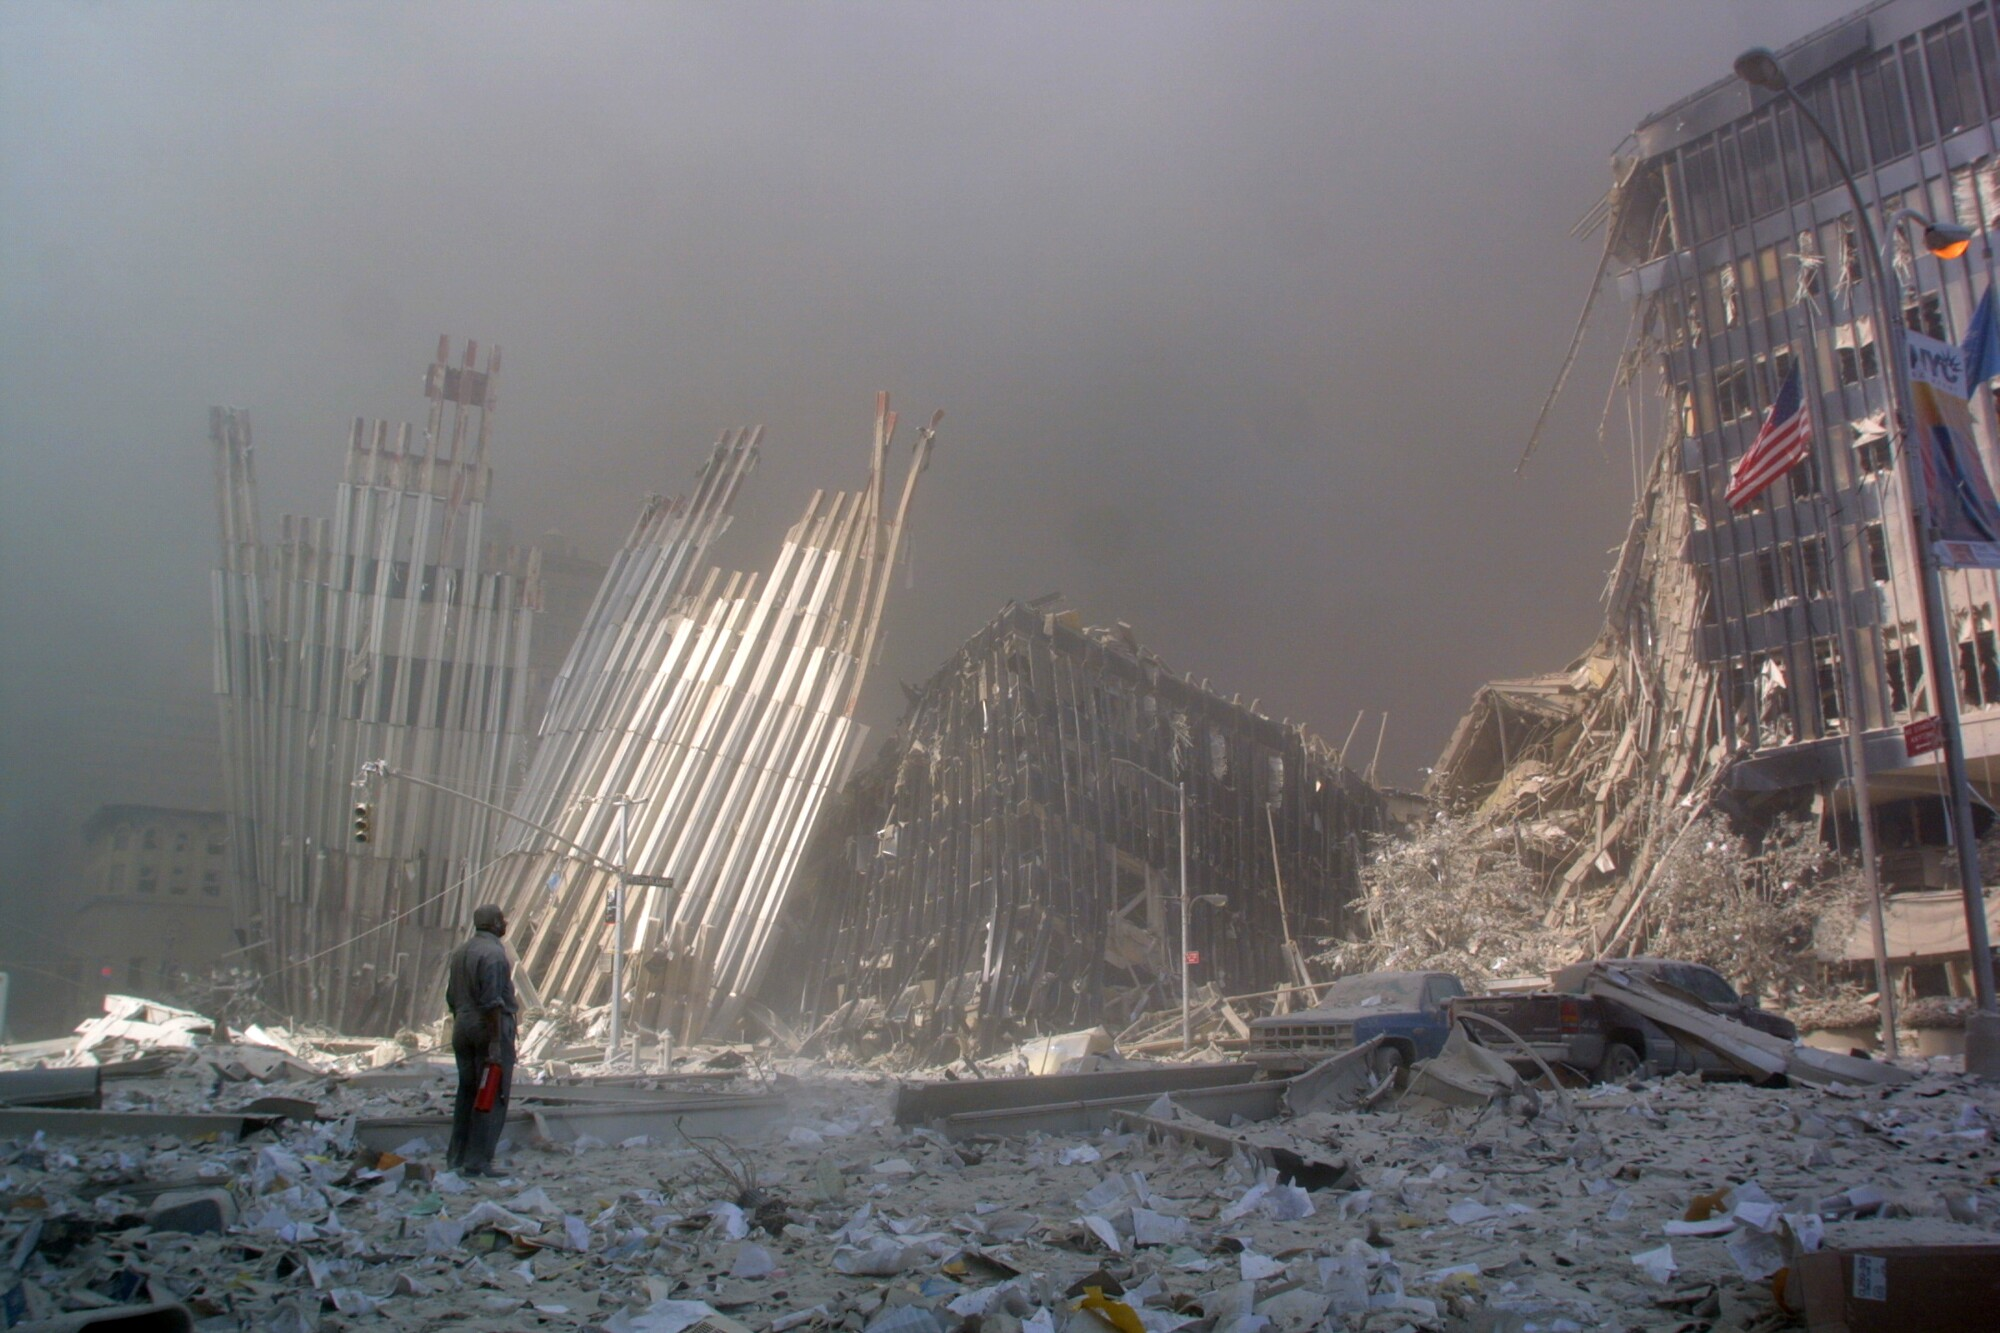 This 11 September 2001 file photo shows a man standing in the rubble, and calling out asking if anyone needs help